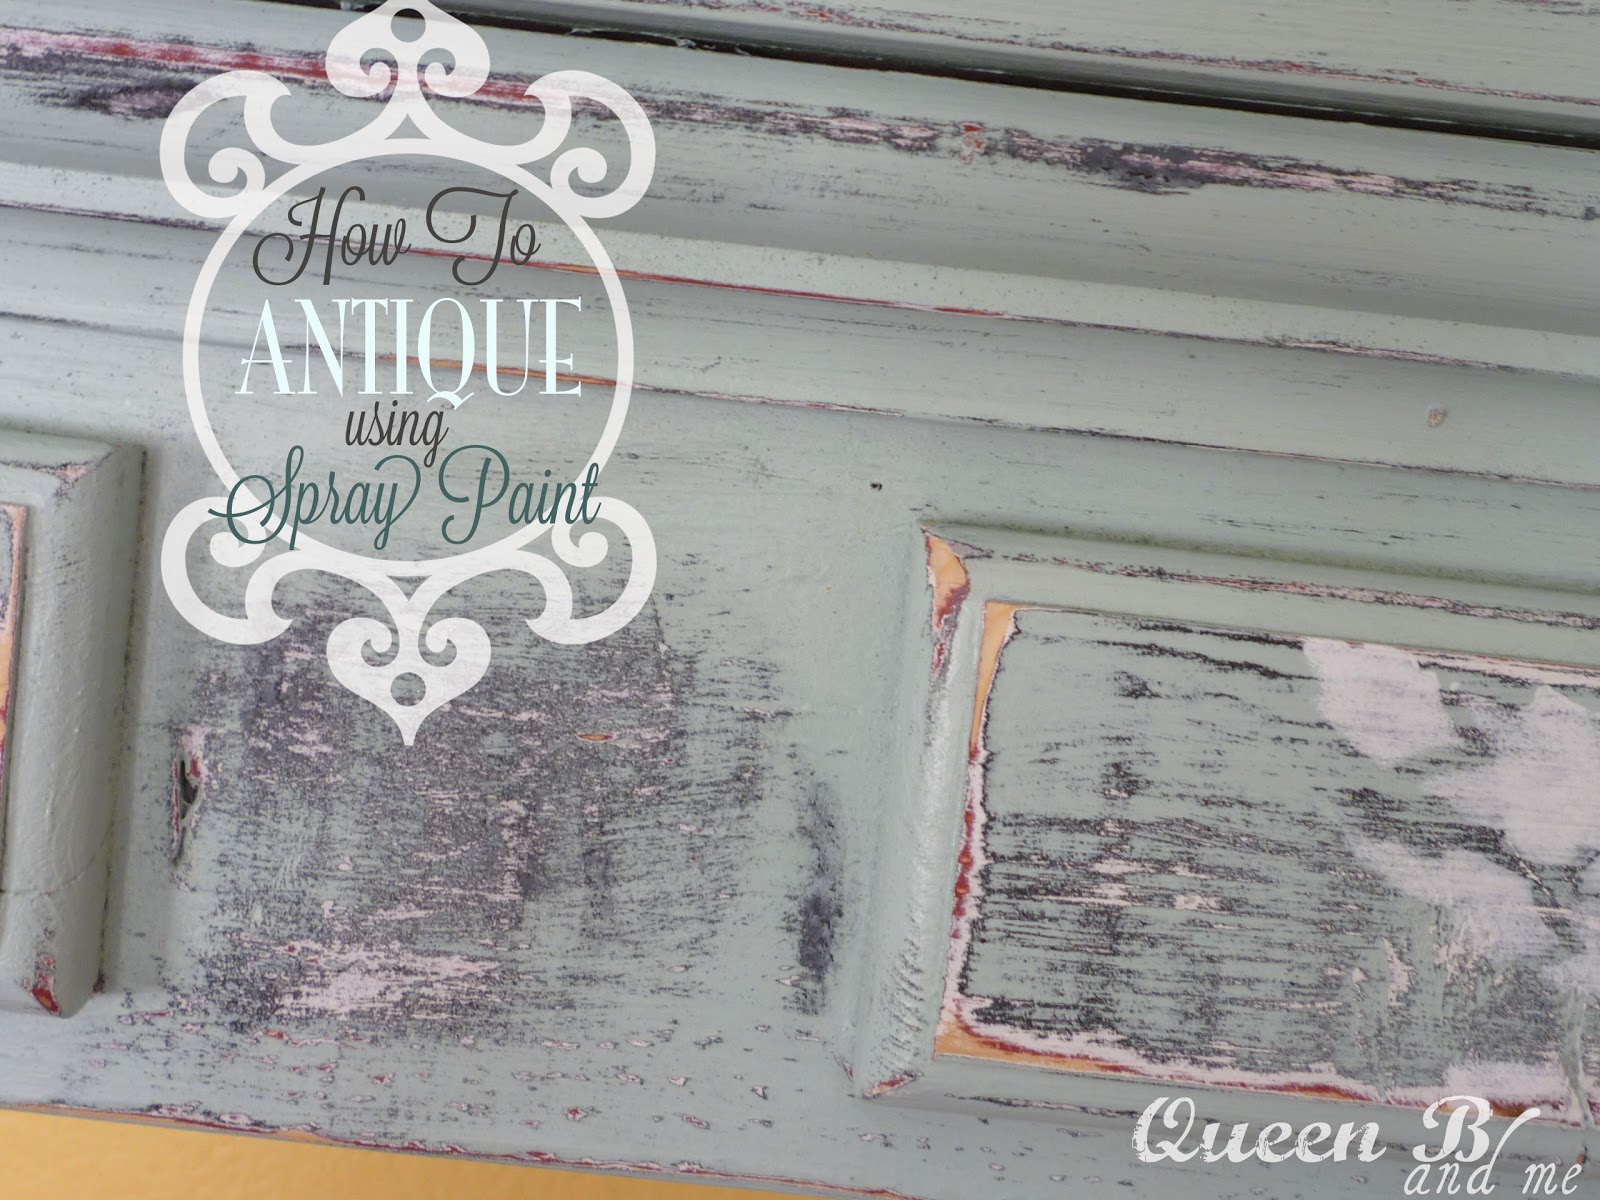 how to antique using spray paint